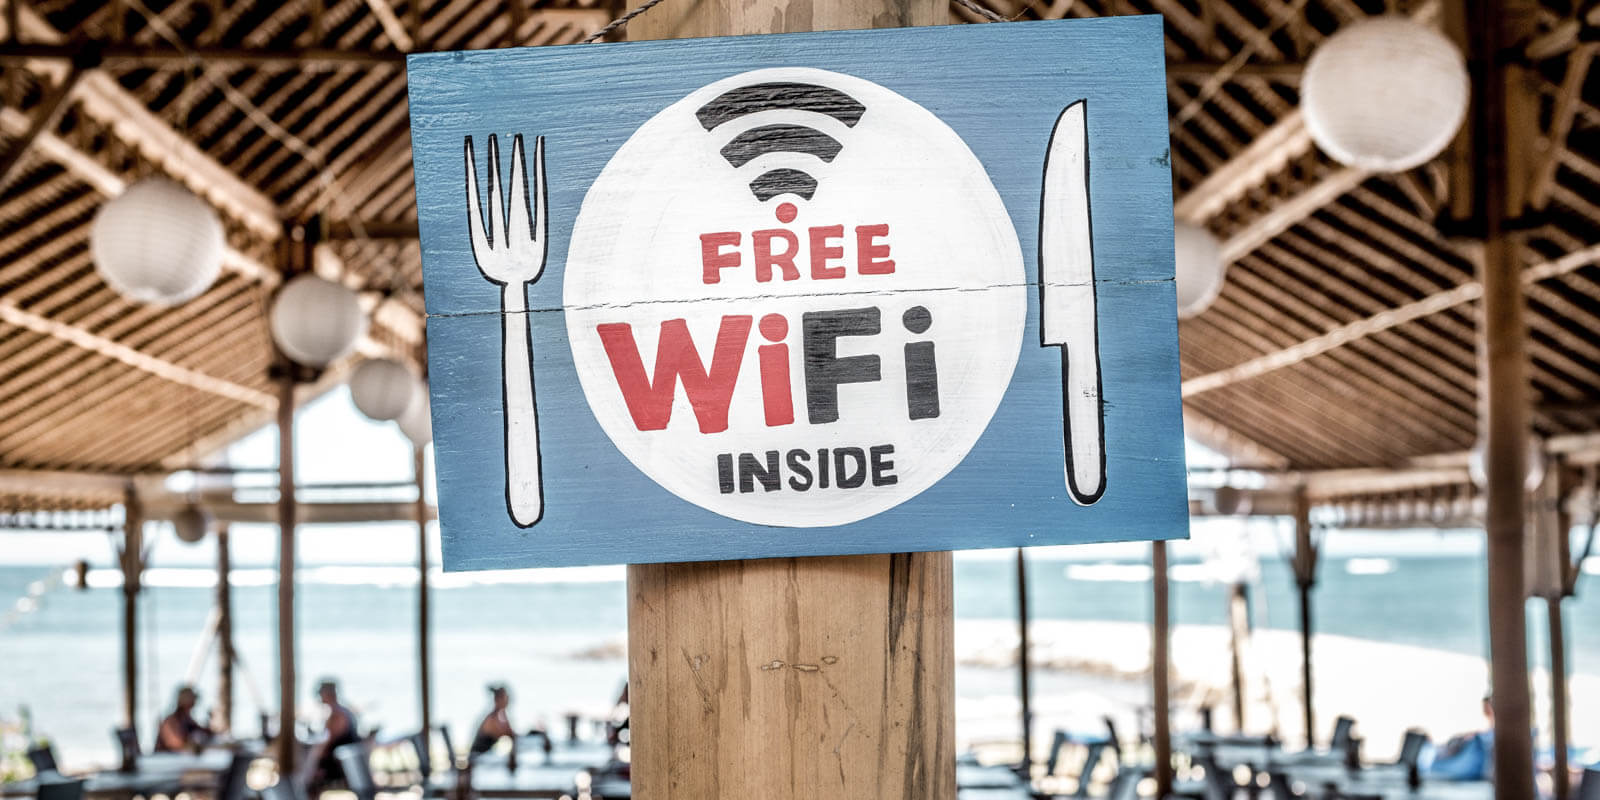 A sing with free wifi on it in a restaurant